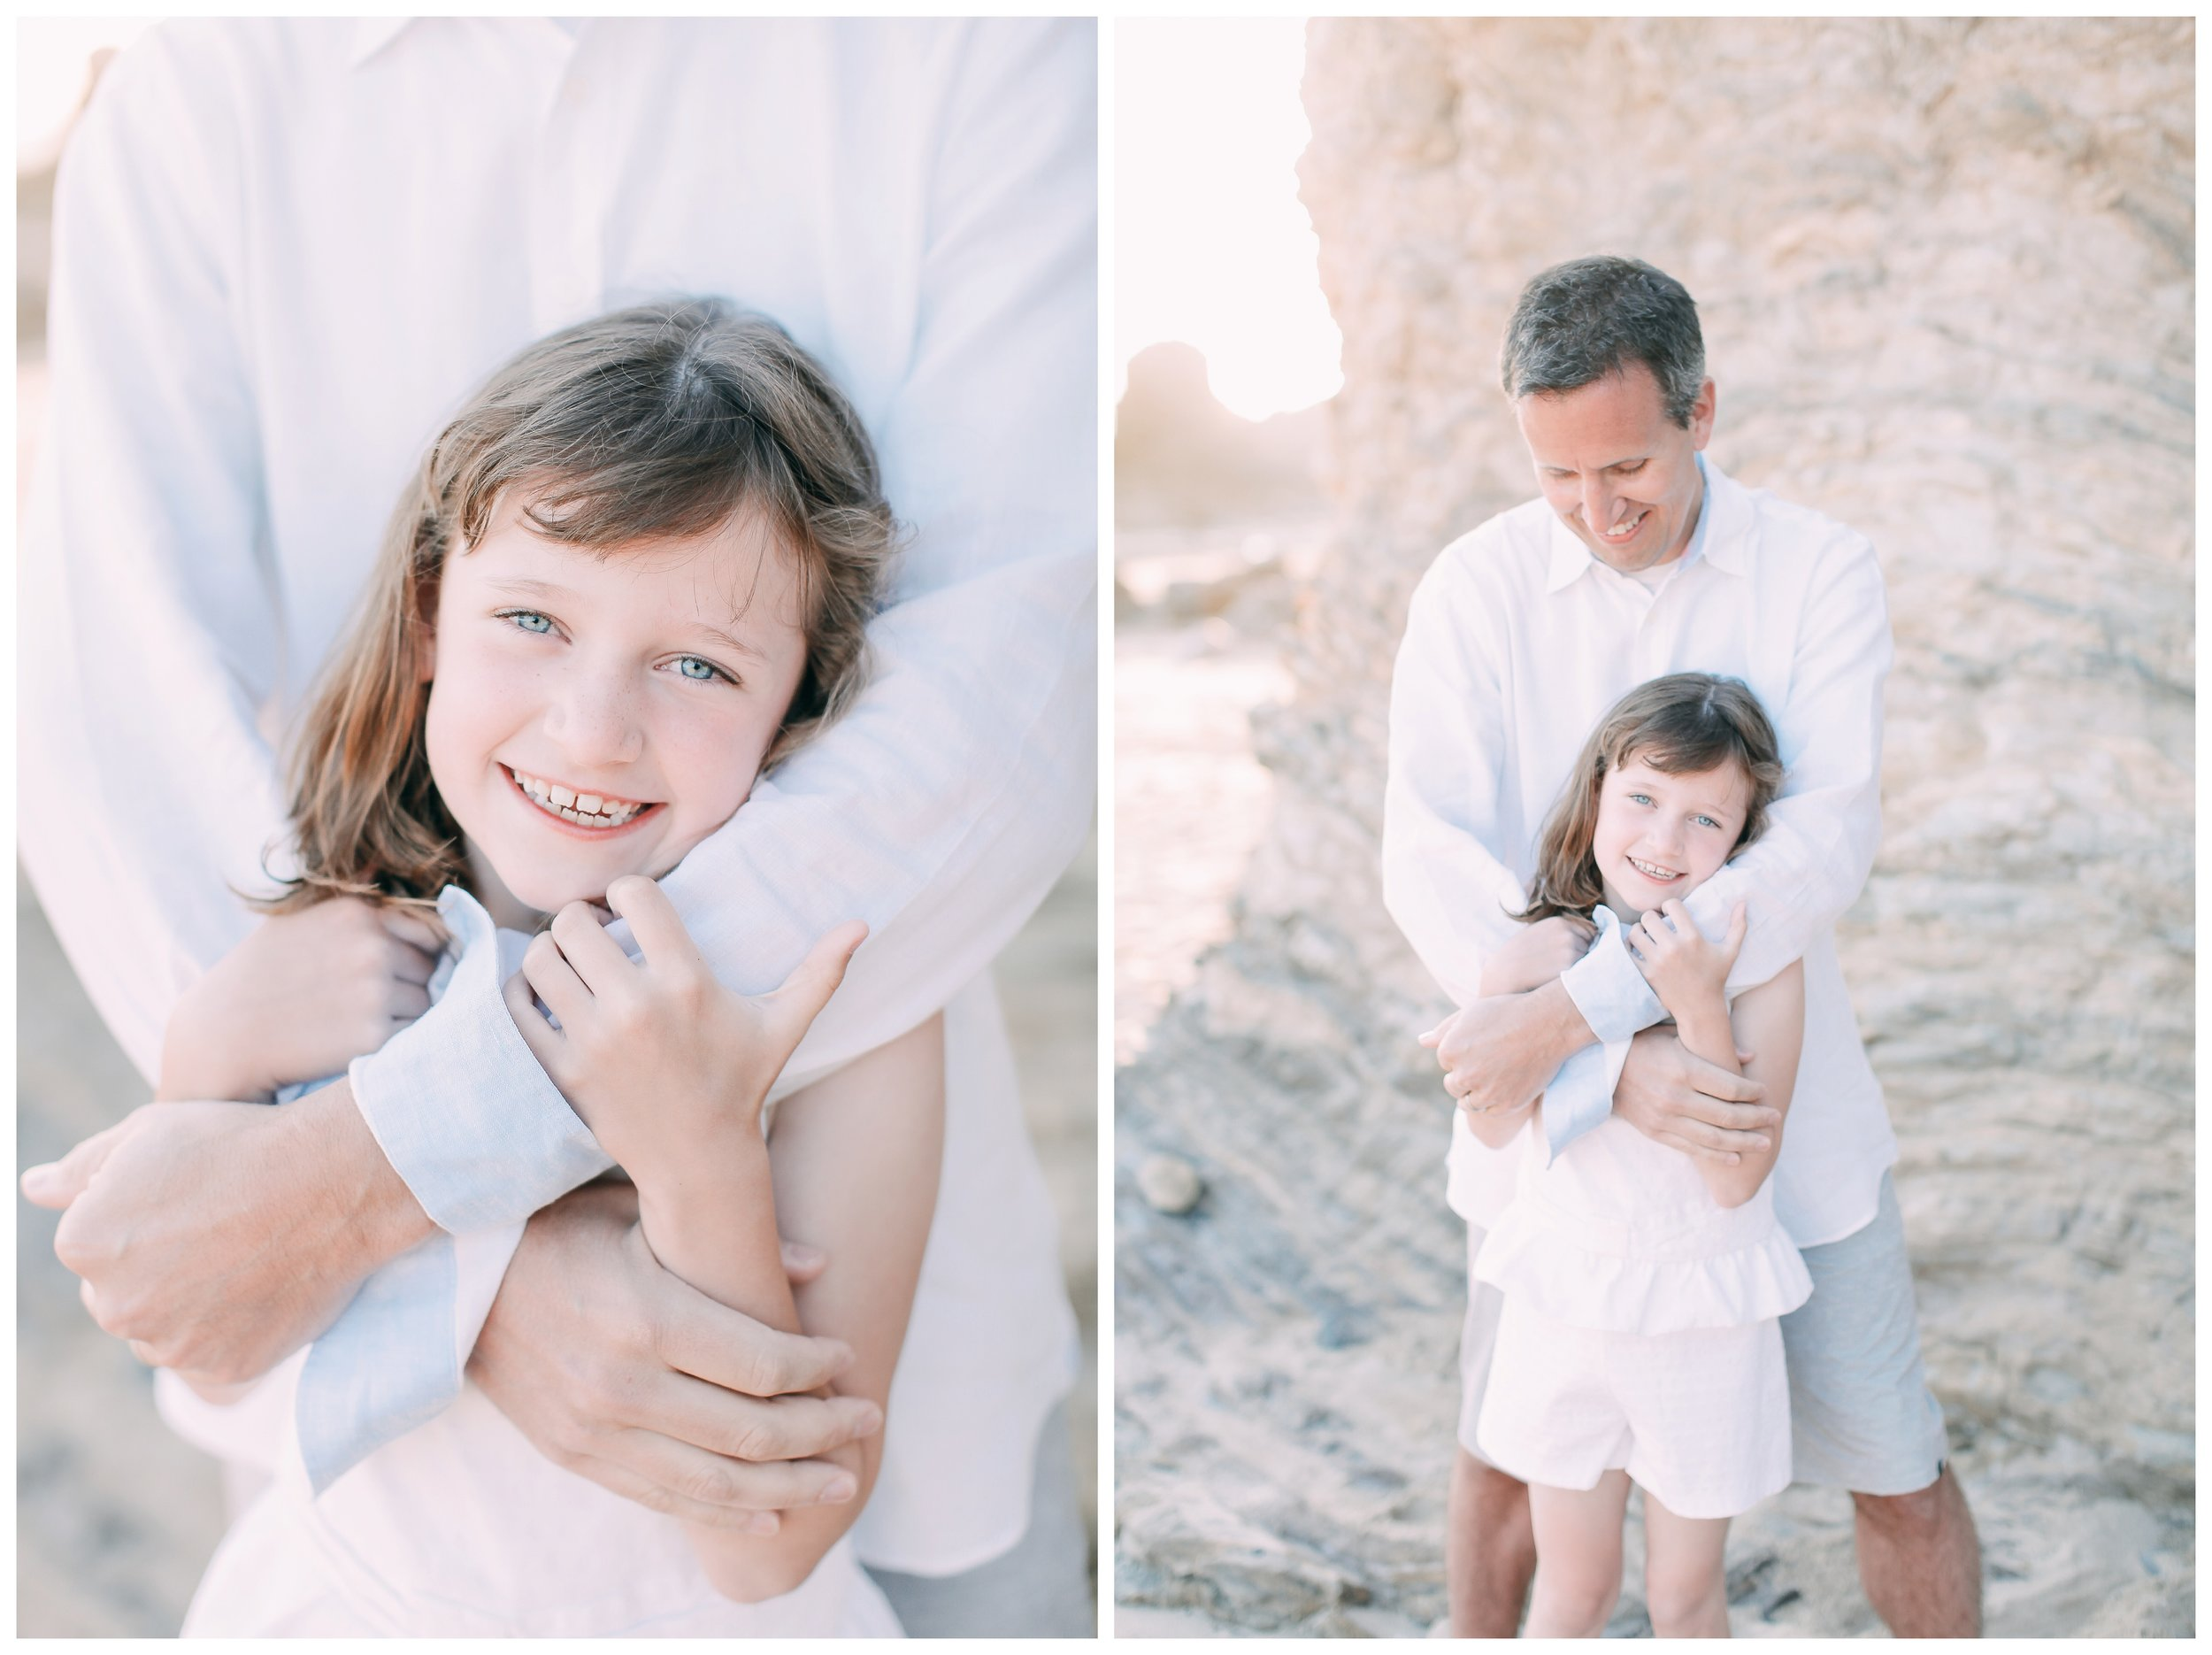 Orange_county_family_photographer_cori_kleckner_photography_0127.jpg